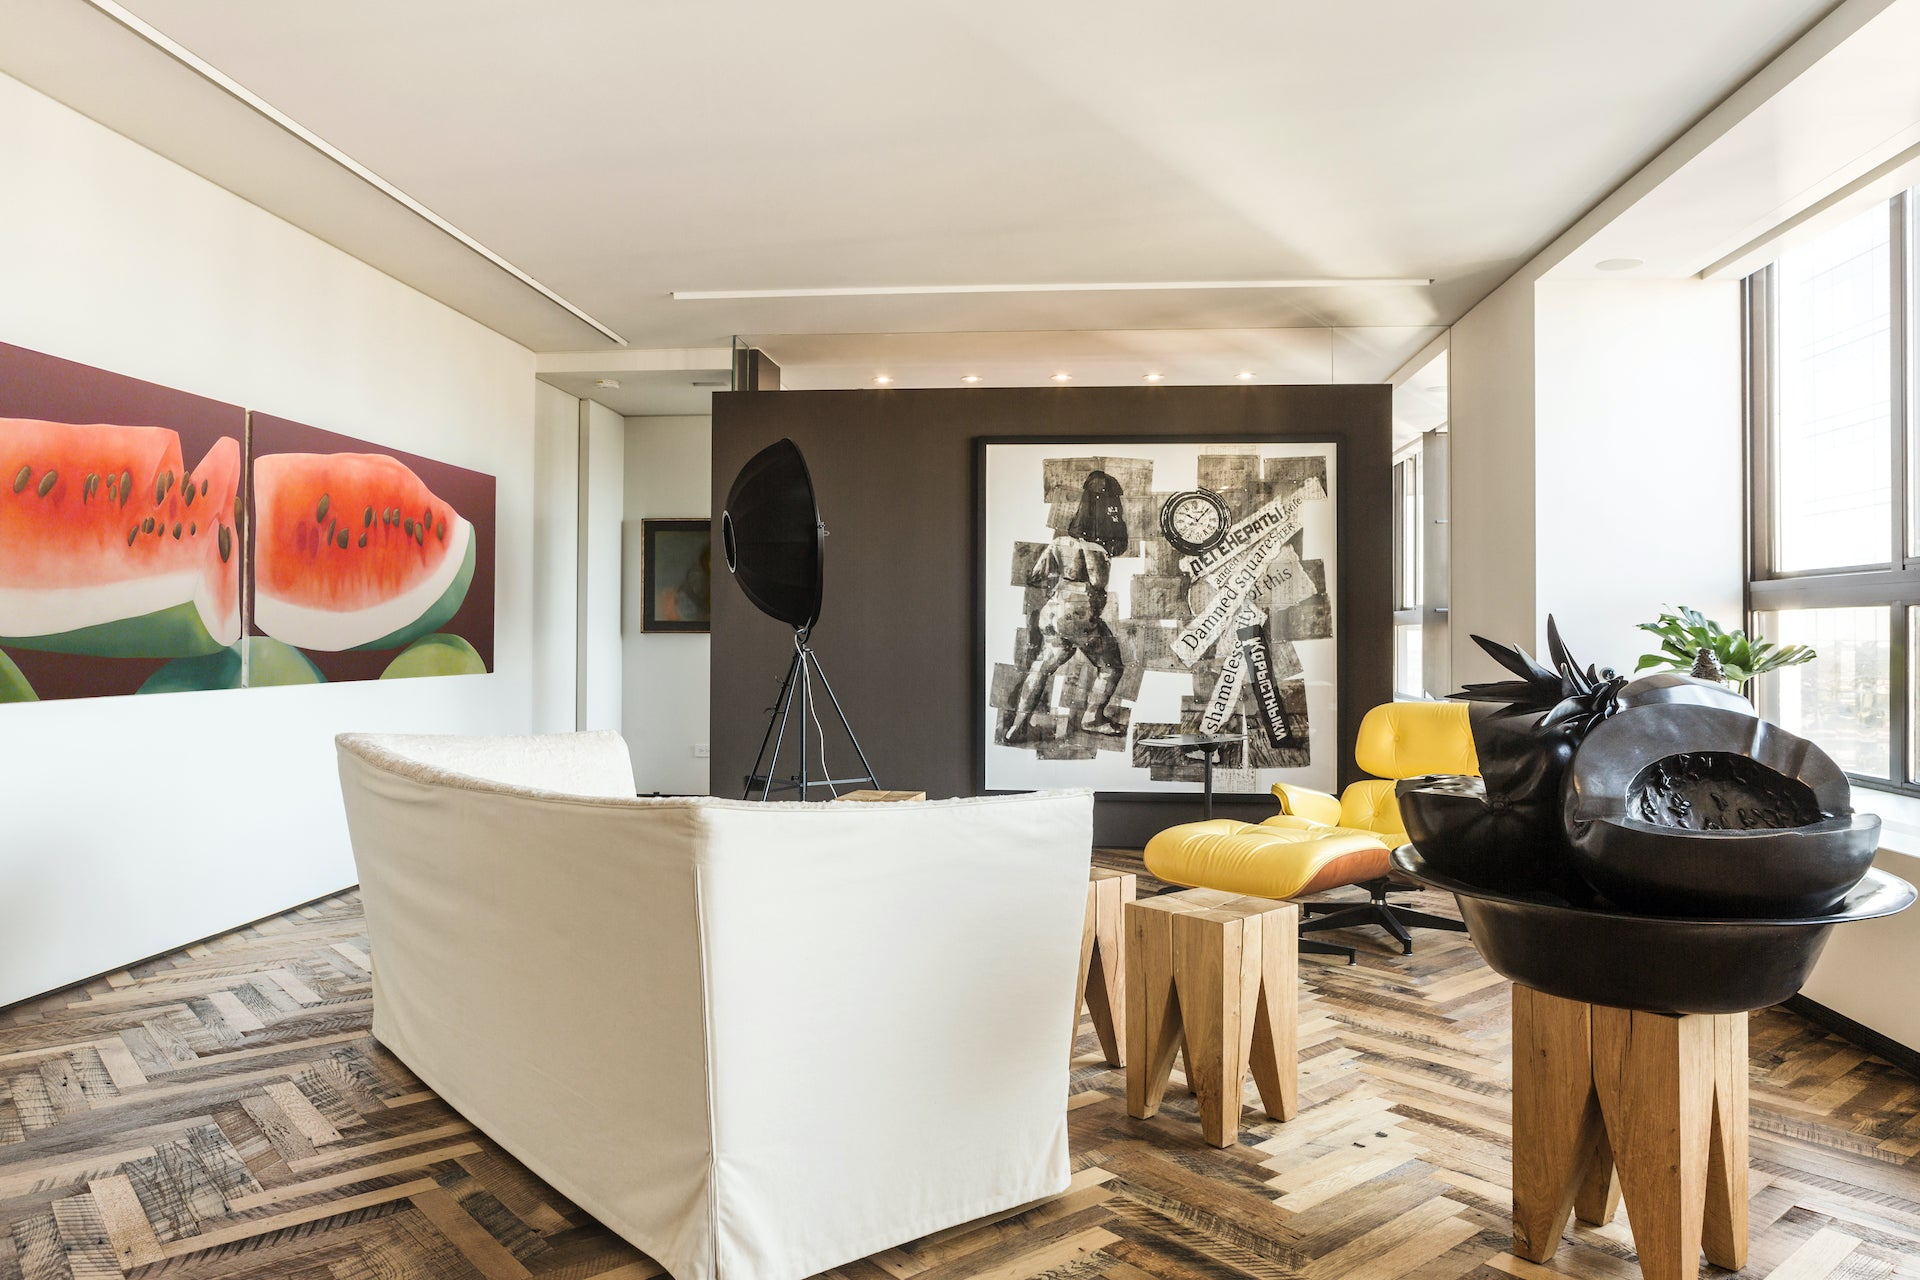 From this view, a dark tobacco wall divides the room while still letting in light. The collage is by William Kentridge; banana-colored lounge chair by Charles and Ray Eames; diptych watermelon painting and bronze fruit bowl sculpture by Ana Mercedes Hoyos. Photo © Pratya Jankong